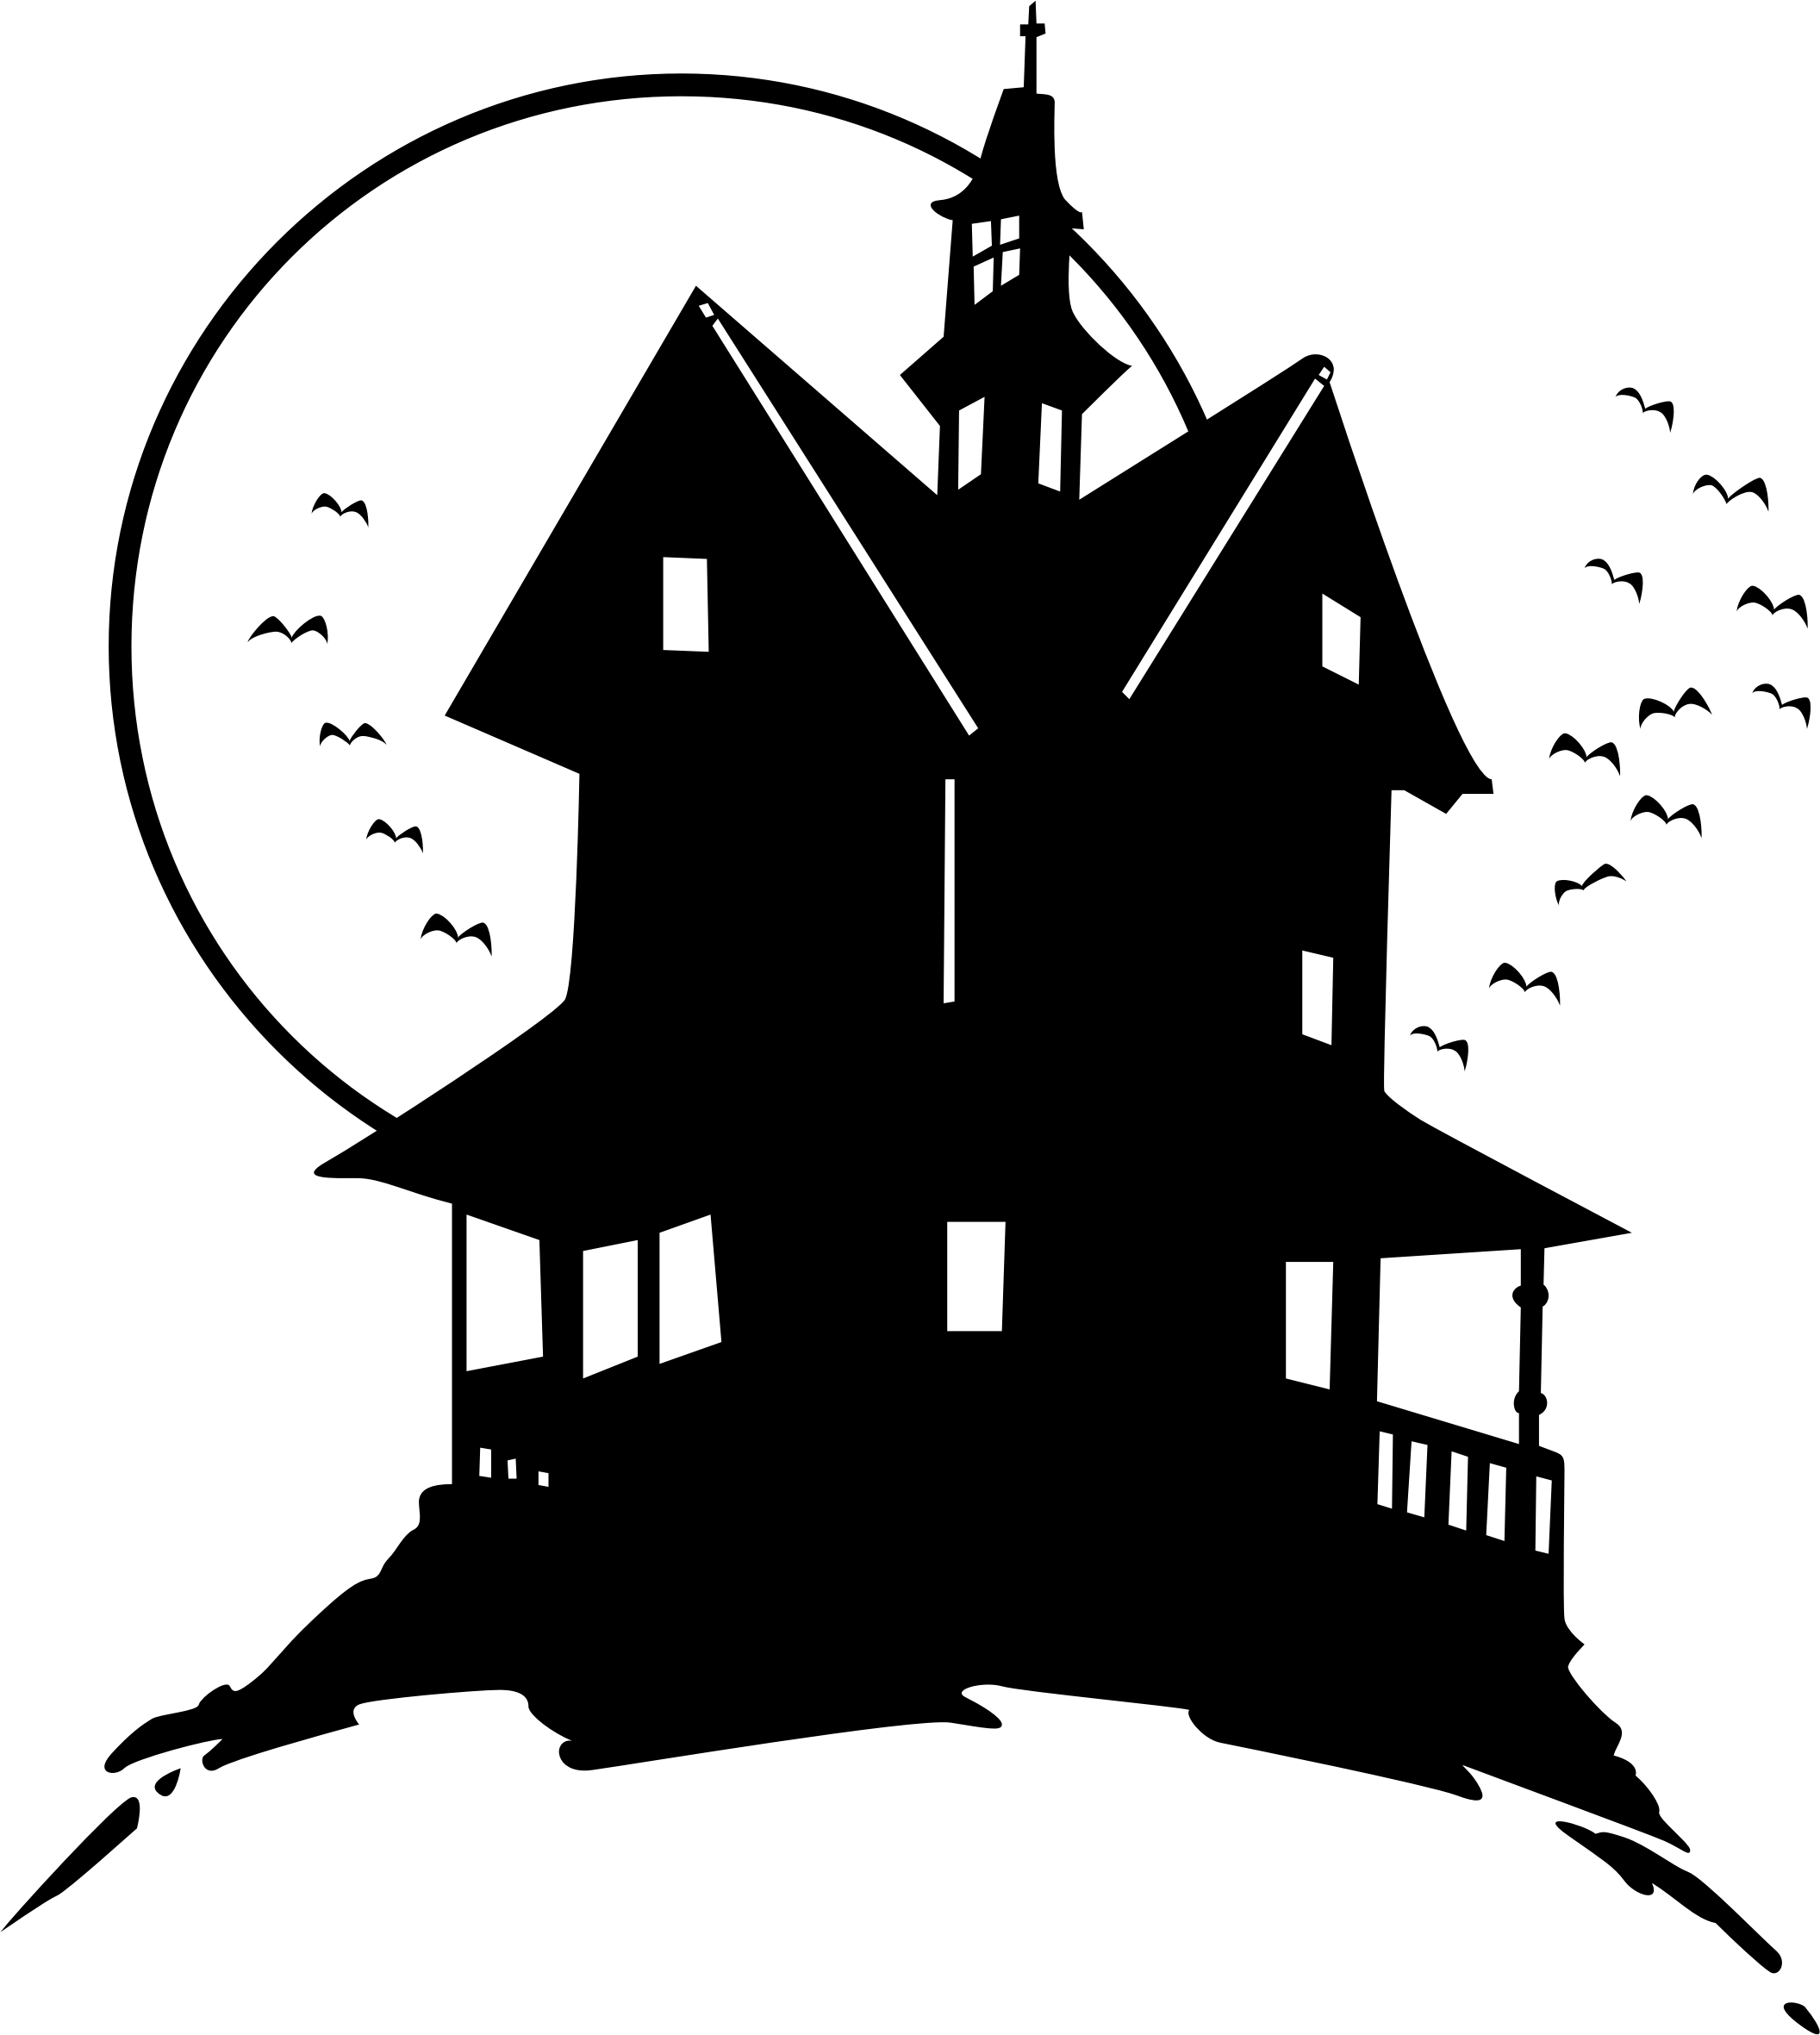 House on hill clipart graphic transparent library Clipart - haunted house on the hill graphic transparent library